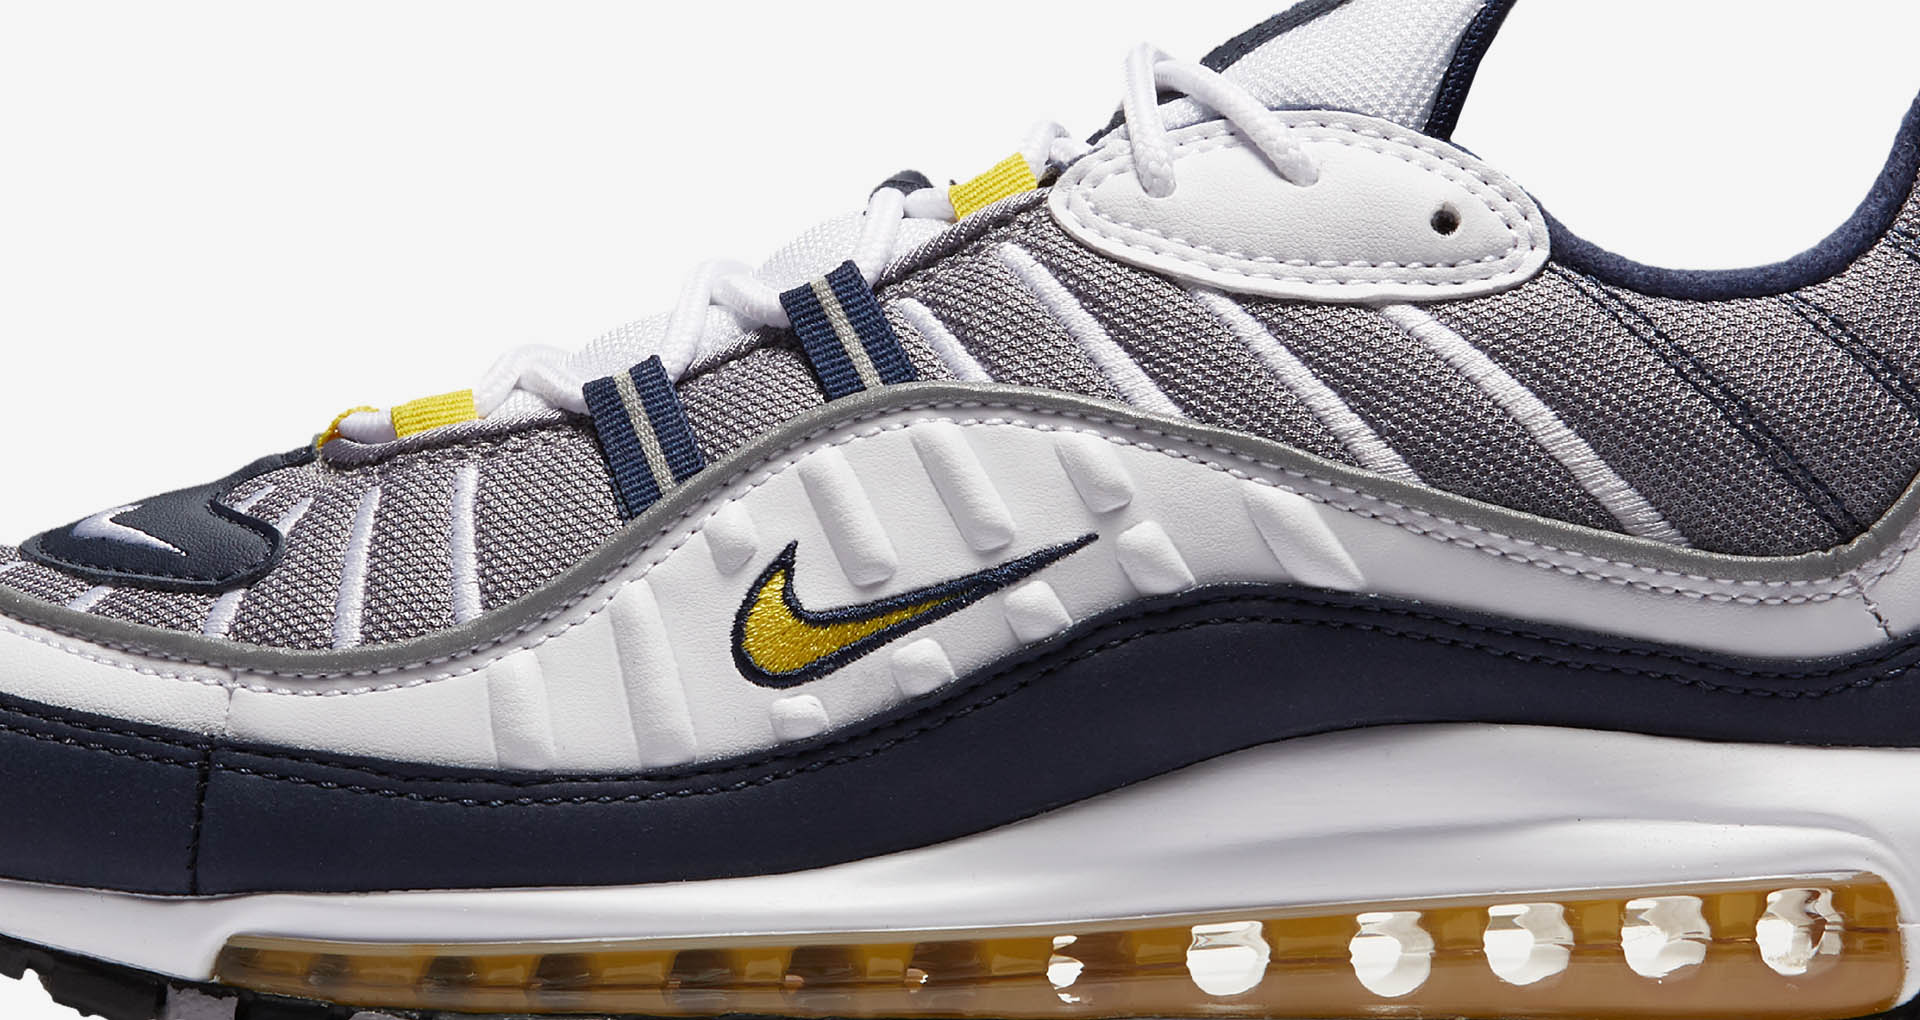 The Nike Air Max 98 'Tour Yellow' Drops Friday WearTesters